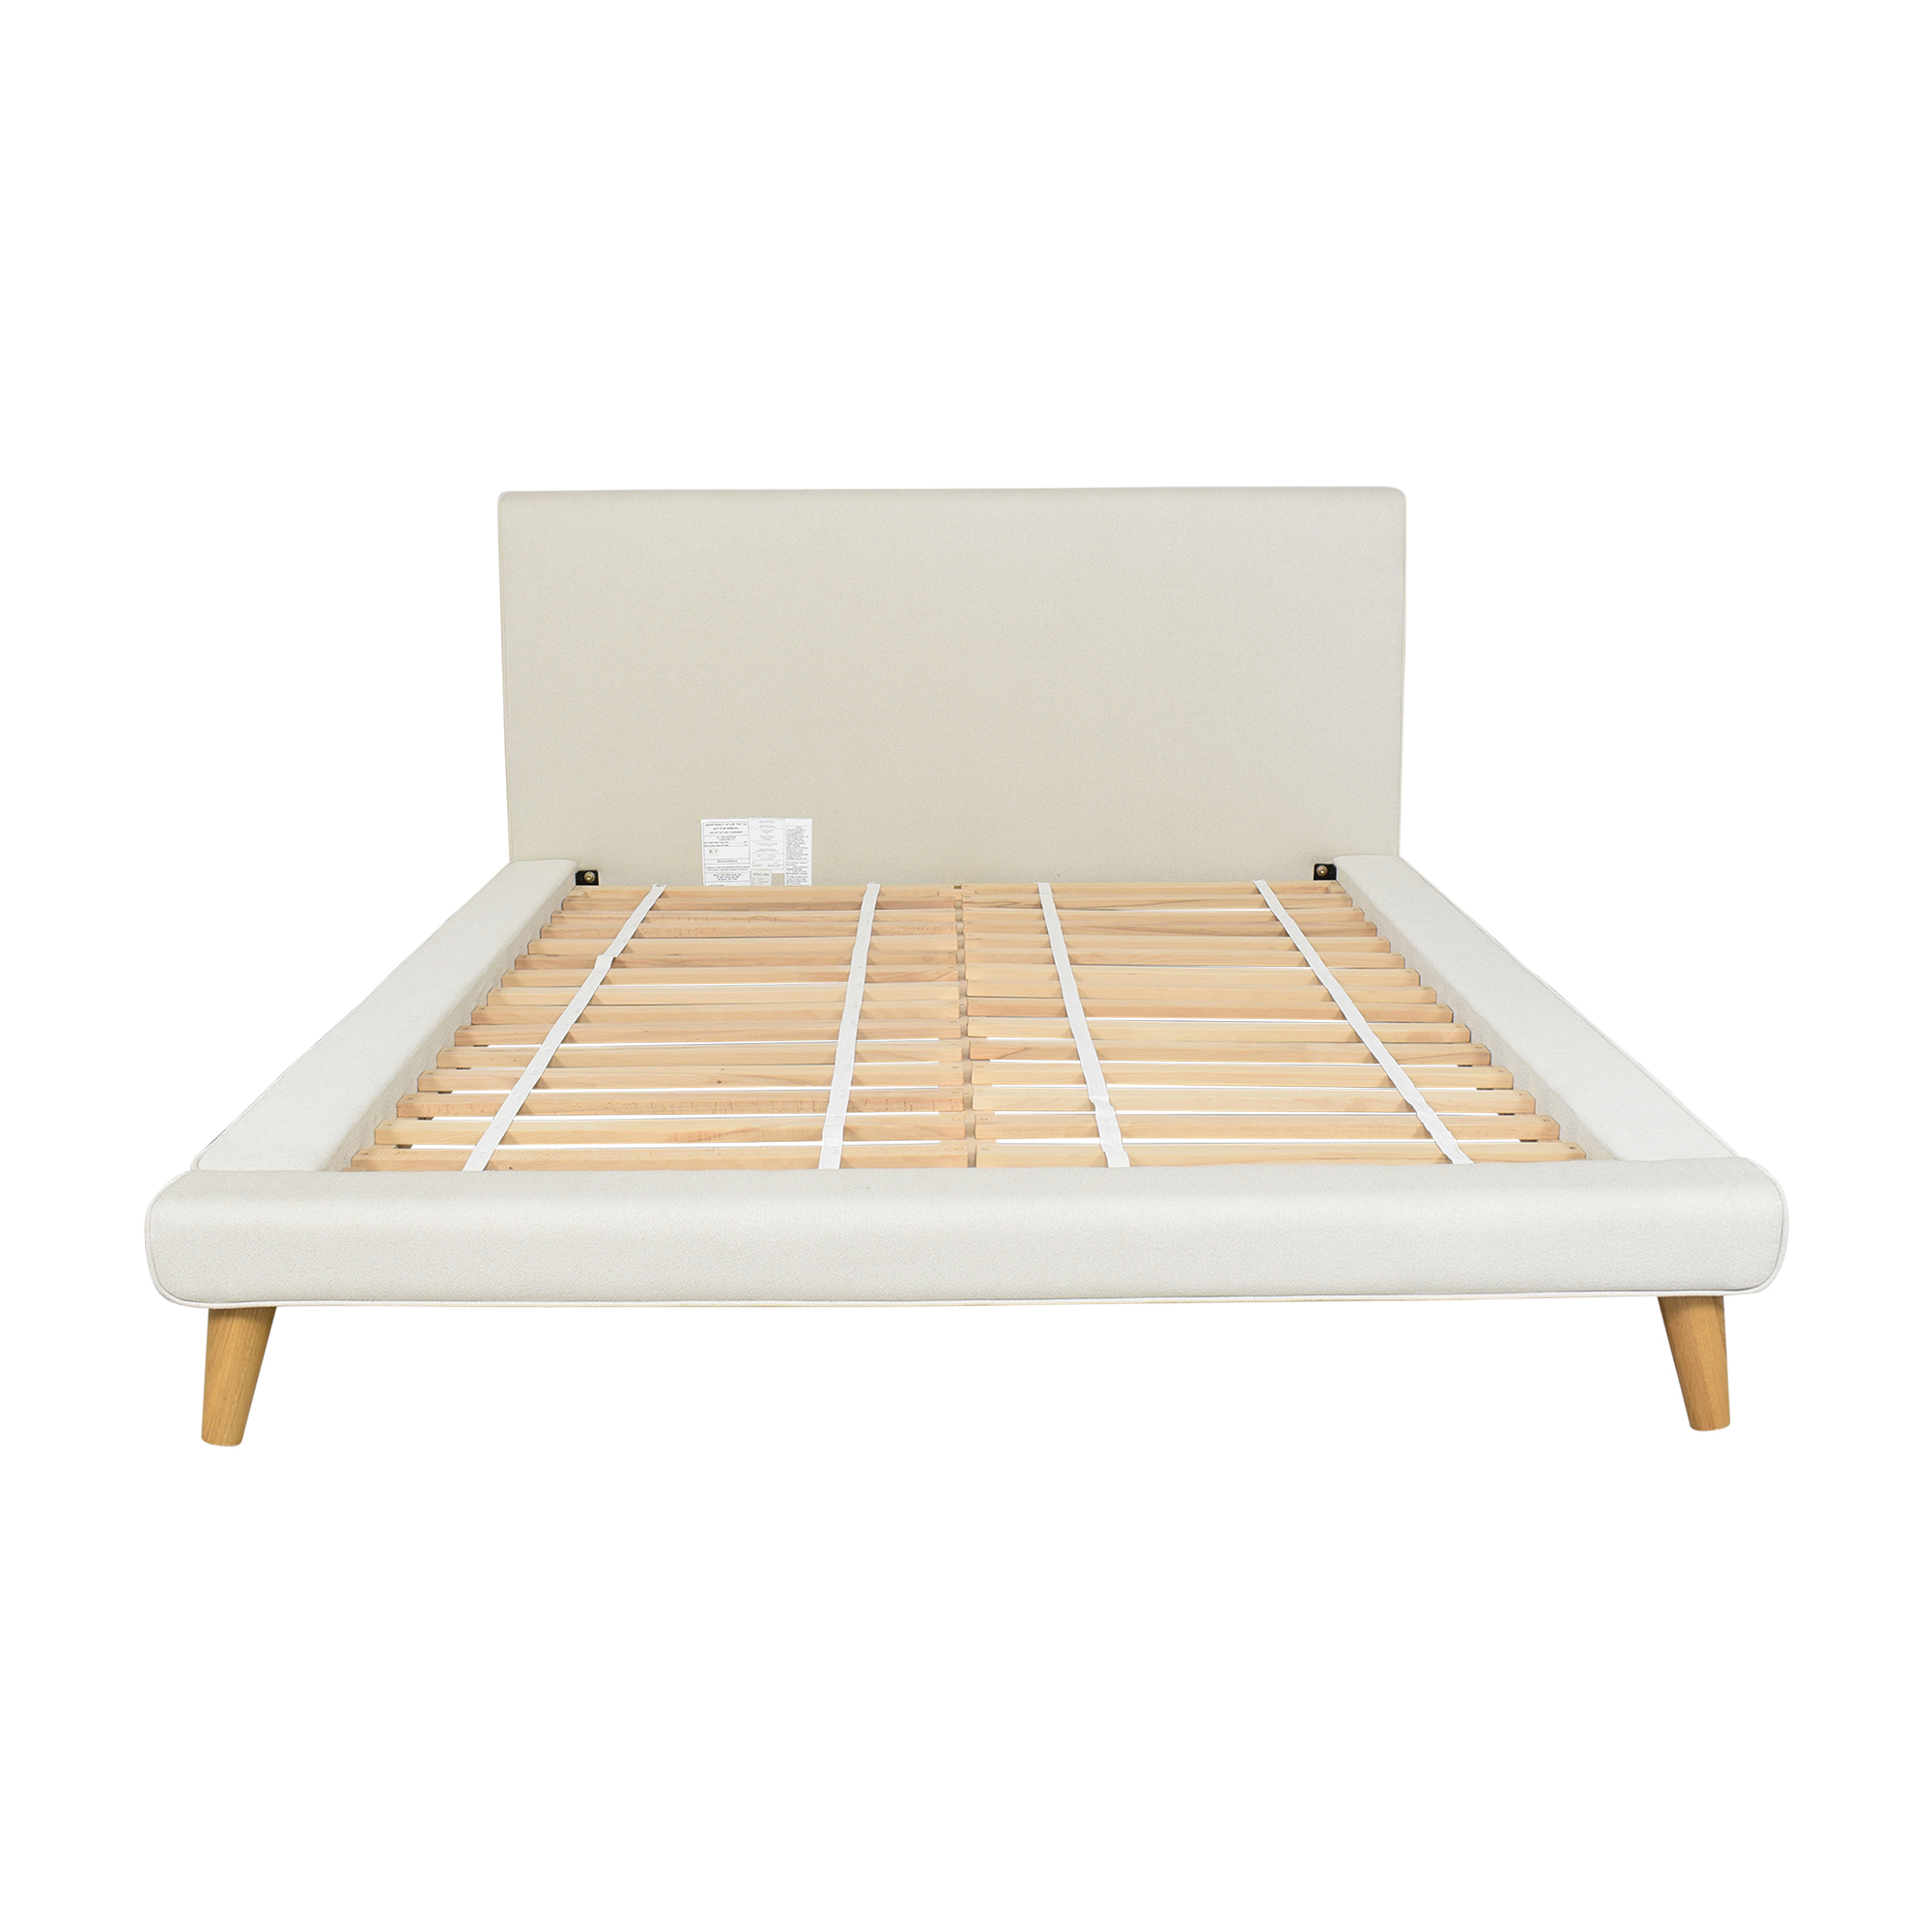 West Elm West Elm Mod Upholstered Queen Platform Bed second hand